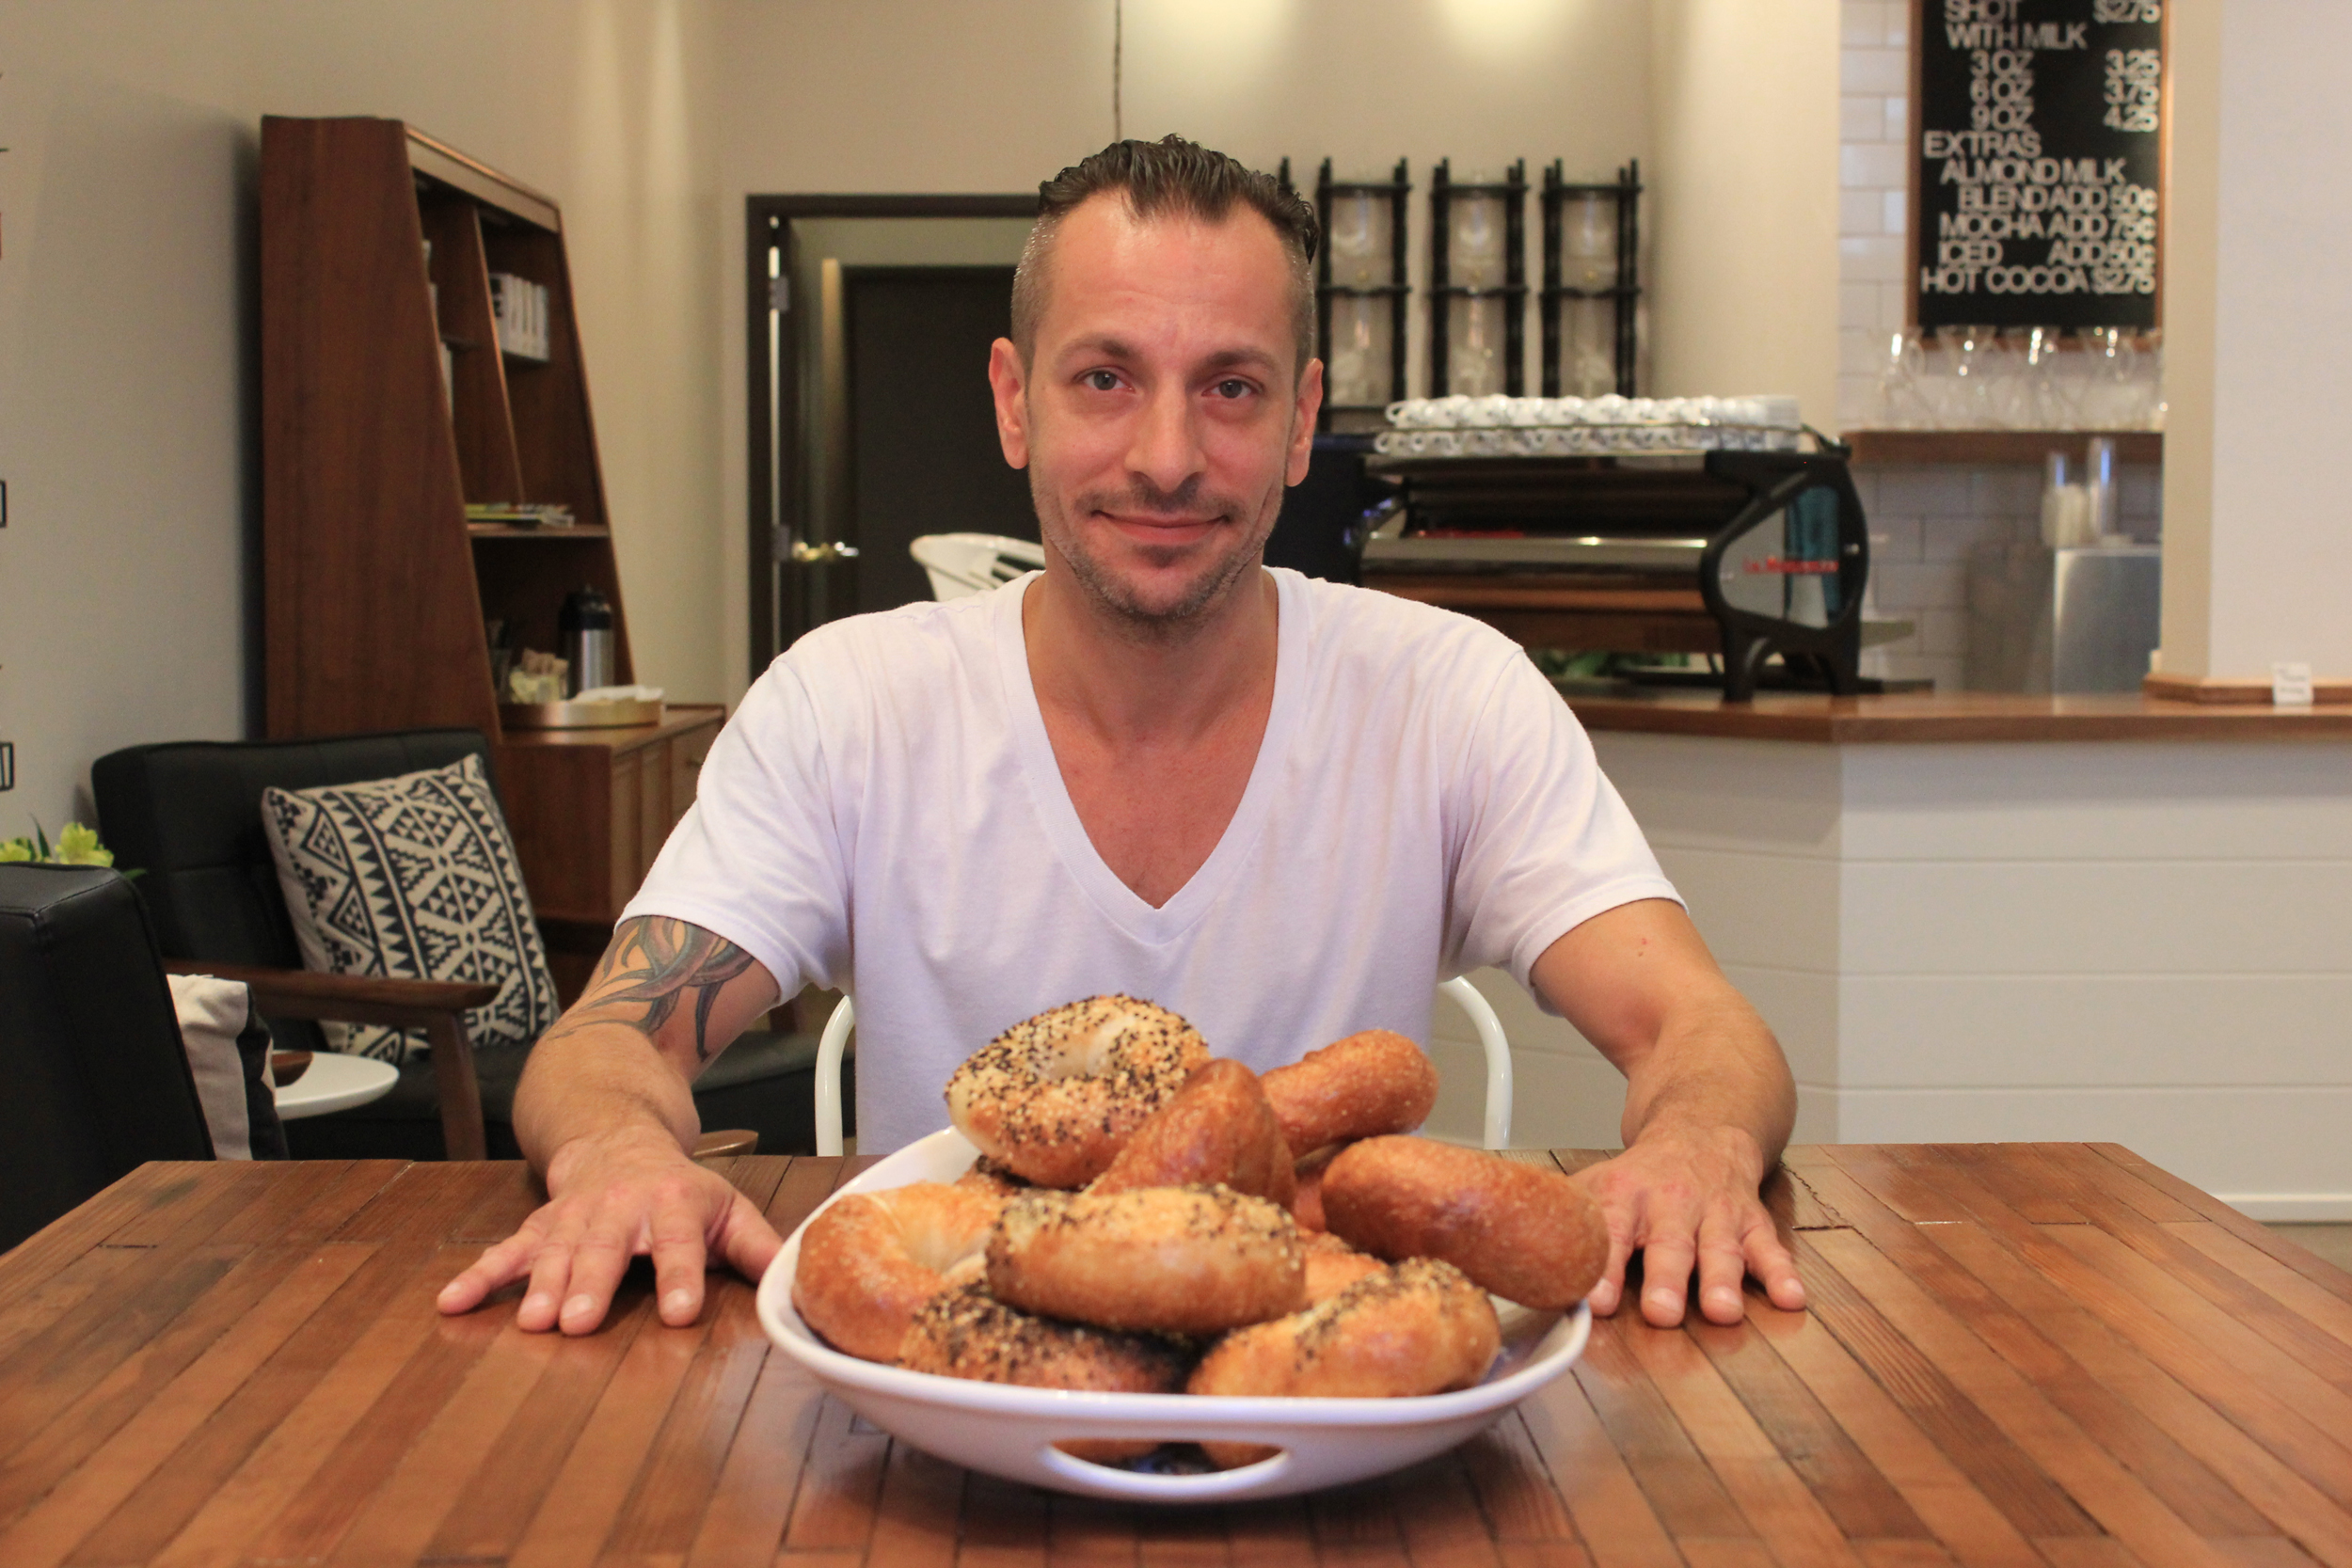 Dan Herbst of Cleveland Bagel Co. presents a variety of his bagels, including plain, everything, sea salt, sesame seed and poppy seed. Pour Cleveland in downtown's 5th Street Arcades is one of several locations throughout the region where people can find Cleveland Bagel Co. bagels.